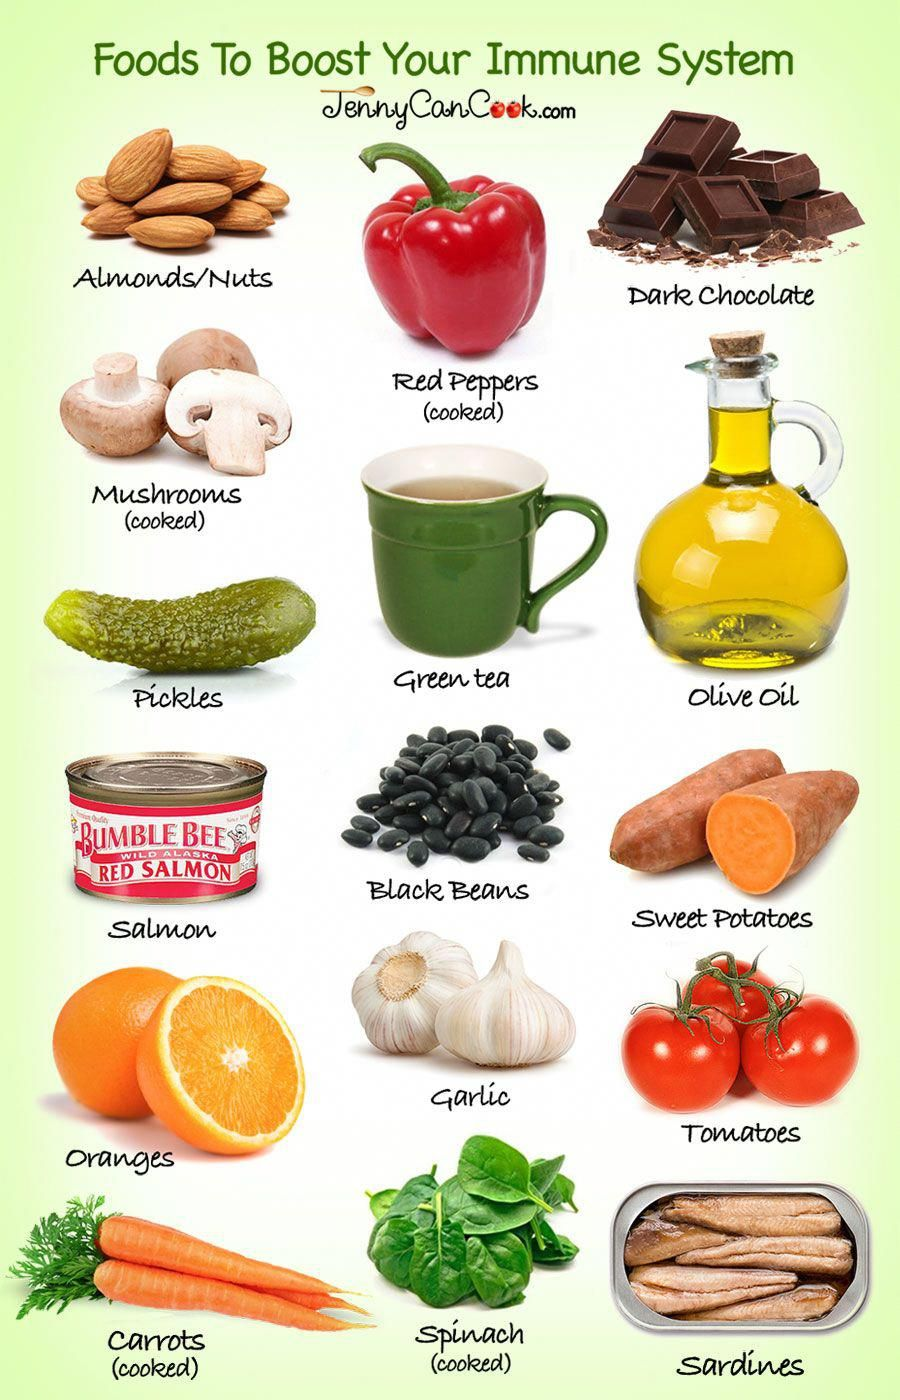 Foods To Boost Your Immune System from Jenny Jones